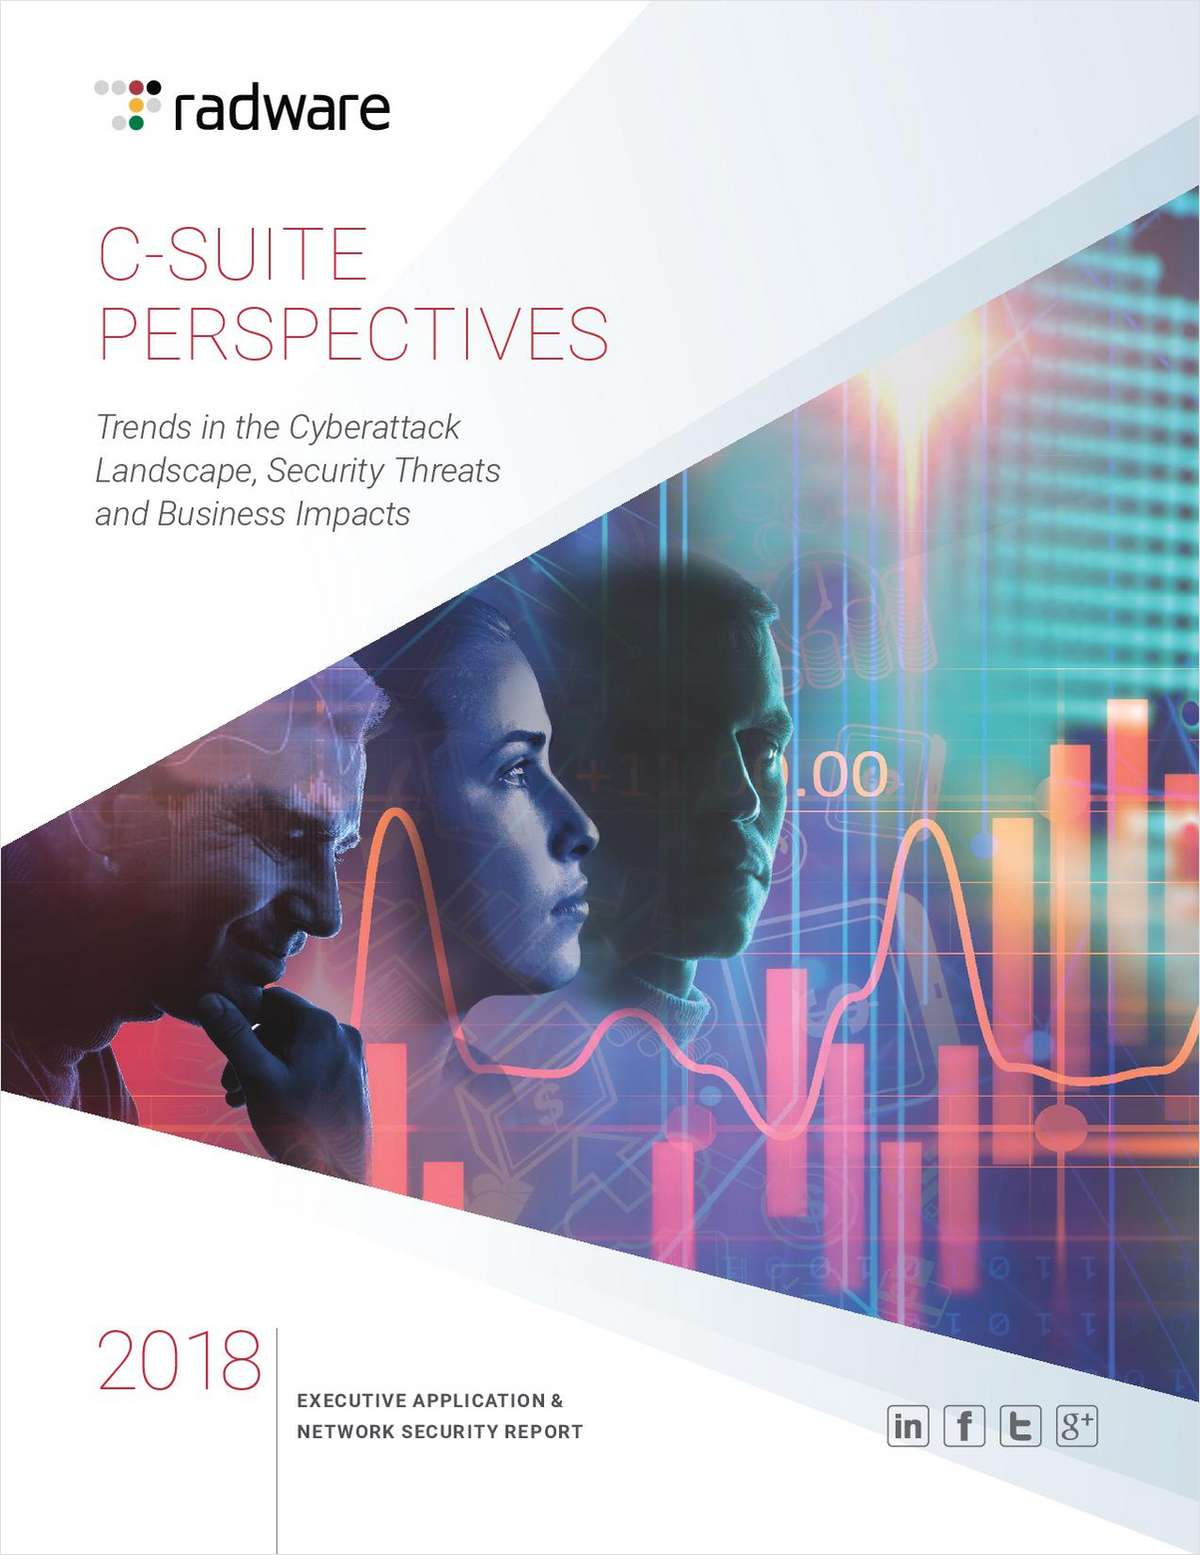 2018 C-Suite Perspectives: Trends in the Cyberattack Landscape, Security Threats and Business Impacts